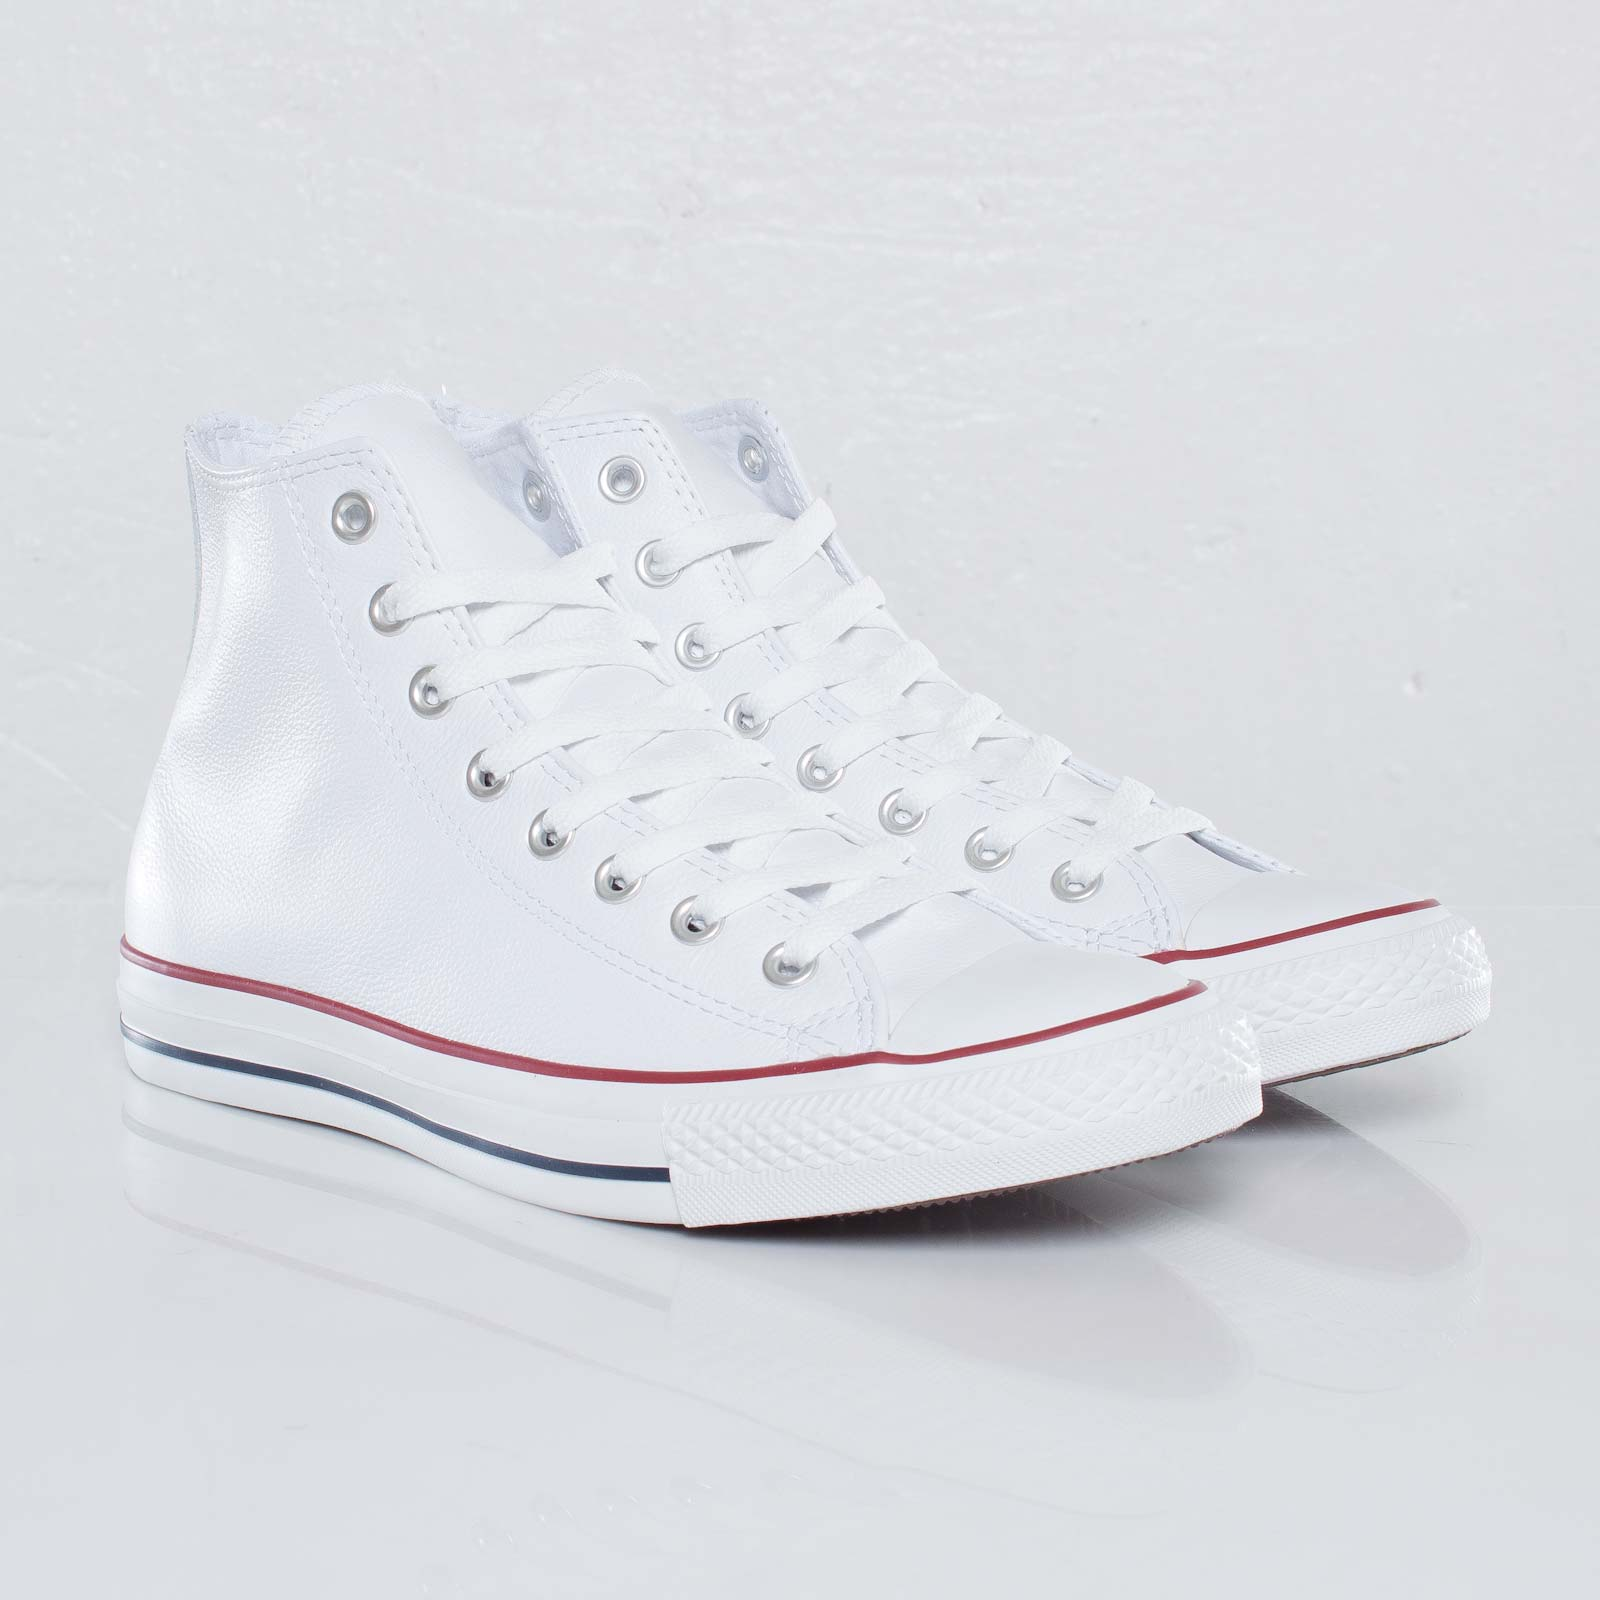 db639273b8c68 Converse All Star Leather Hi - 81214 - Sneakersnstuff | sneakers ...